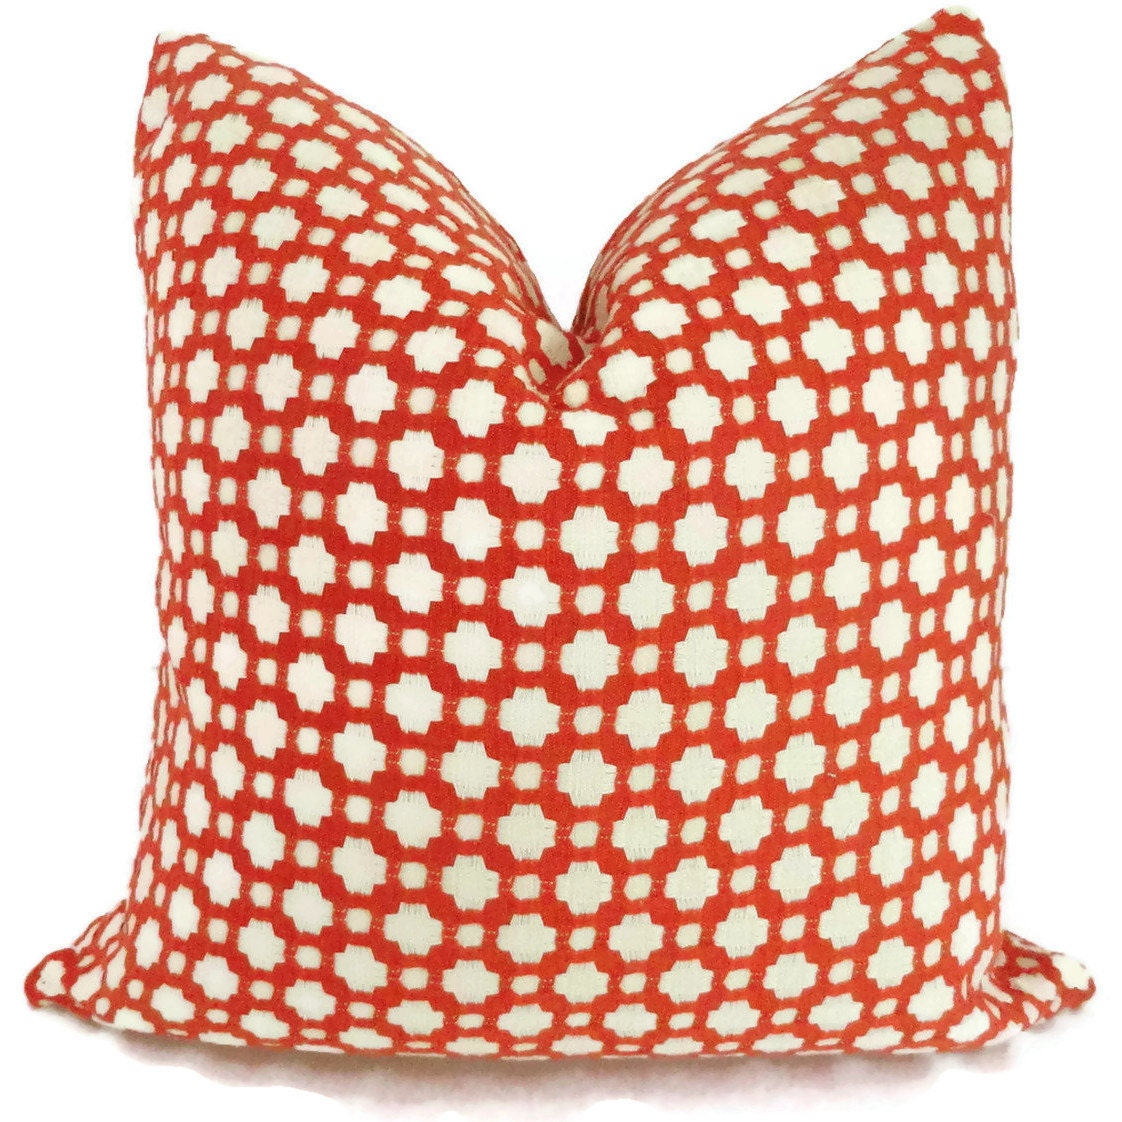 Schumacher Betwixt in Spark Decorative Pillow Cover Toss